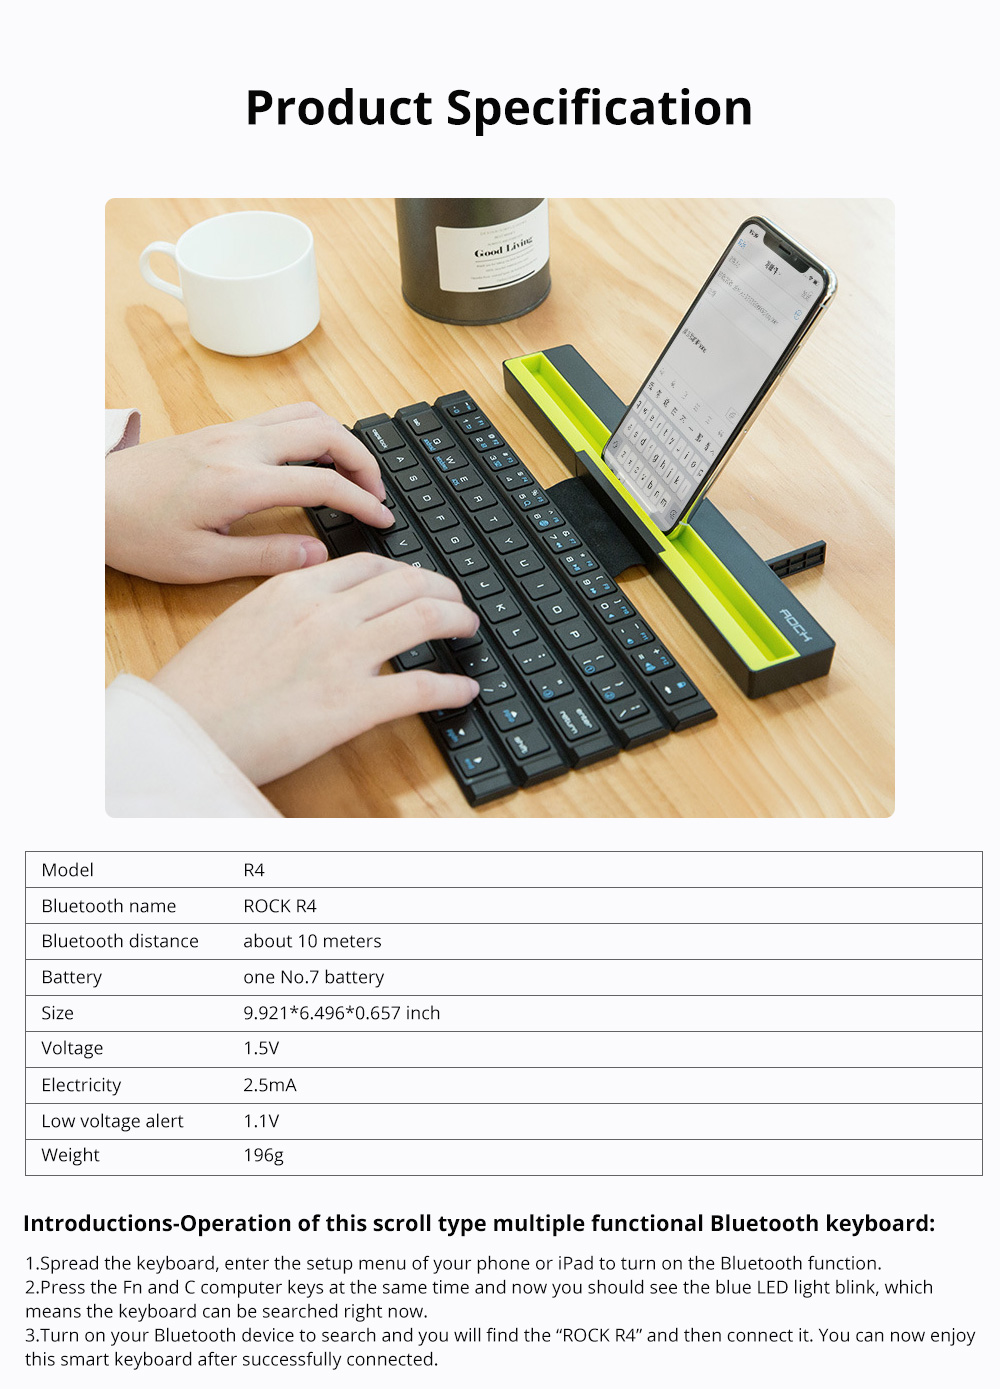 Rock Wireless Bluetooth iPad Keyboard for Both Phones and Tablet Computers Portable Mini-sized Scroll type Android IOS Keyboard for Multiple Devices 7